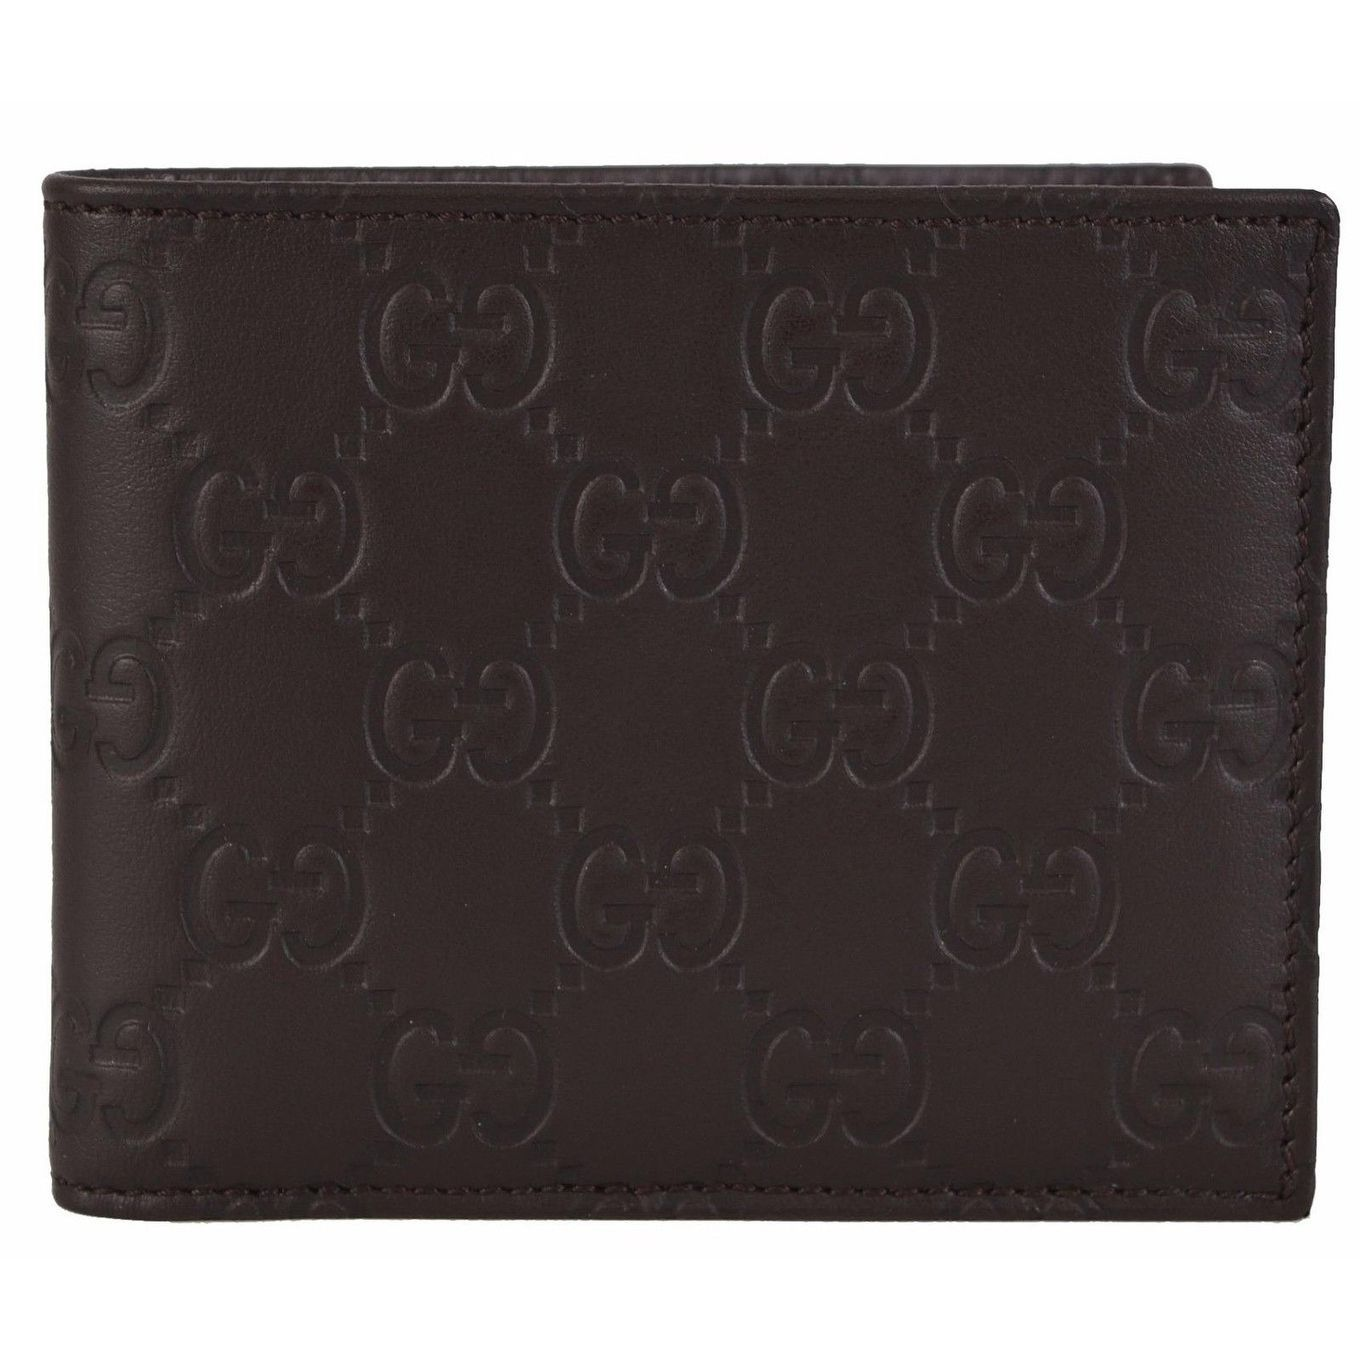 14174074864d NEW Gucci 260987 Men39s GG Guccissima Bifold Wallet Products